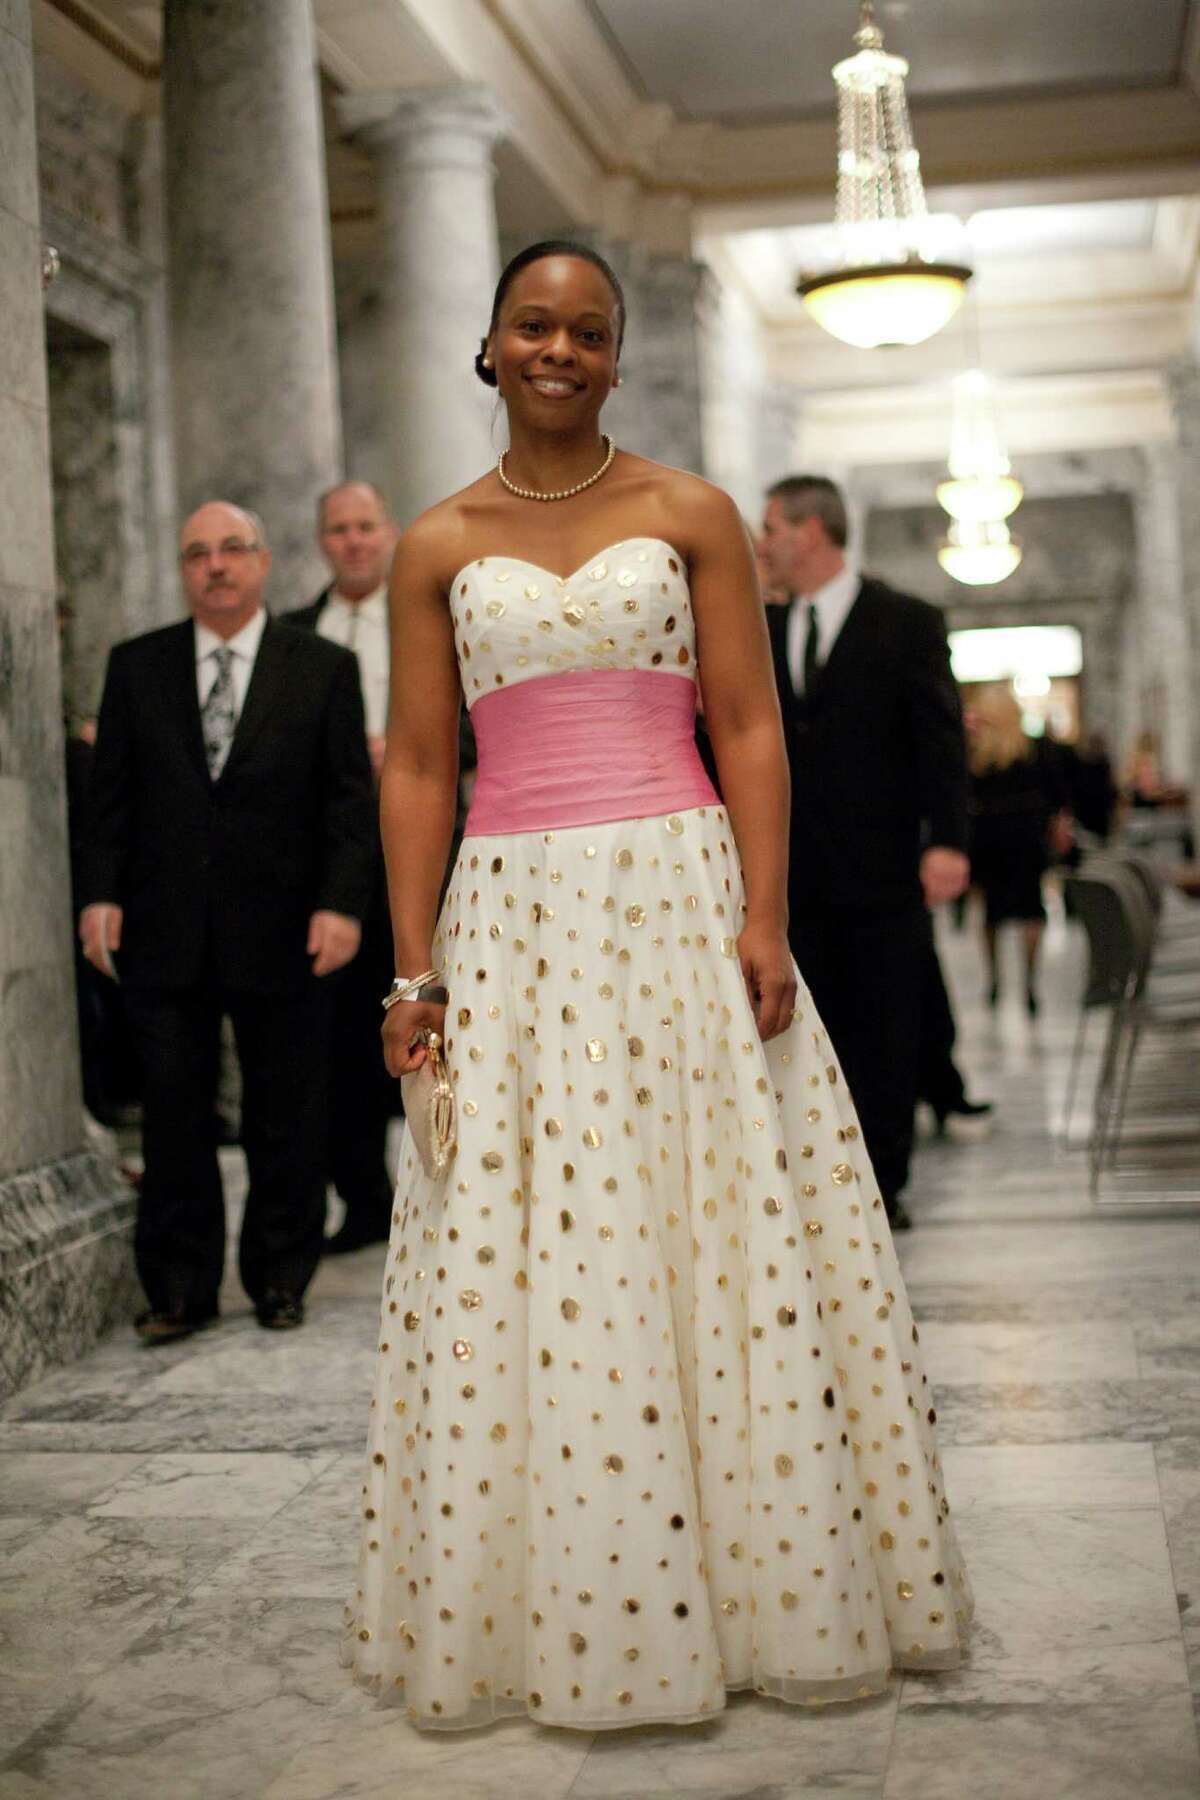 Jamila Thomas-Roberts is shown wearing her dress outside the reception room of the State Capitol building.